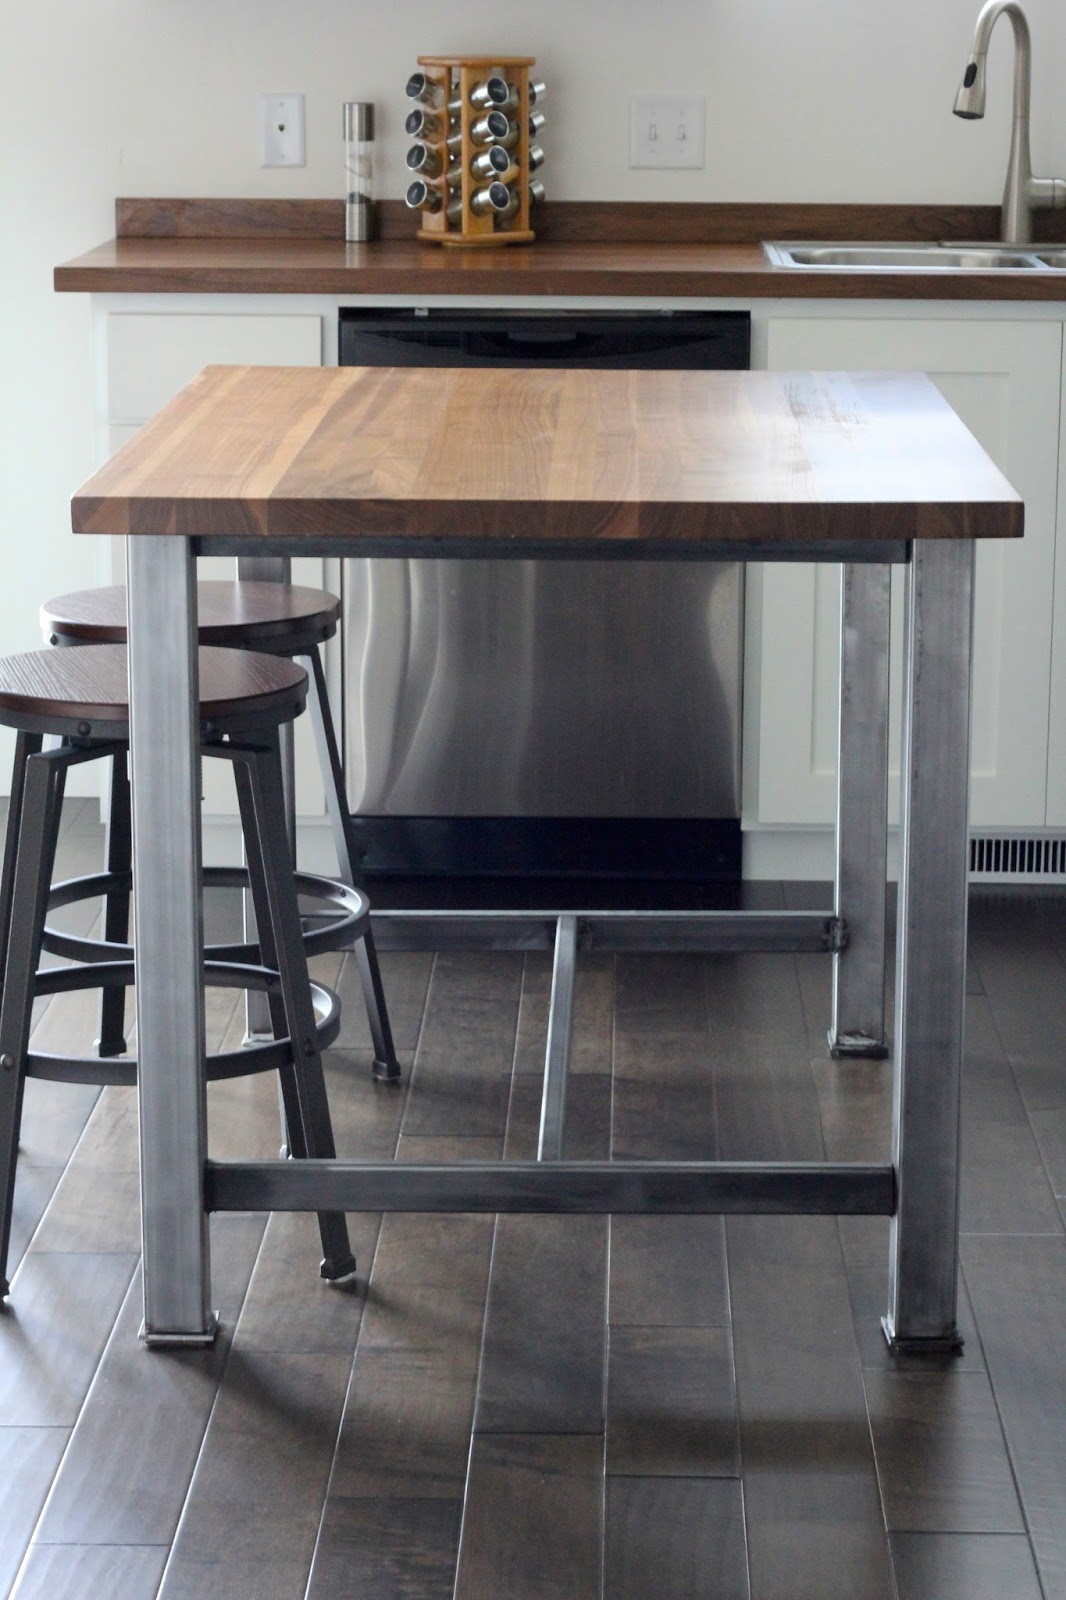 industrial chairs target beach with umbrella butcher block countertop kitchen reveal - lou girls